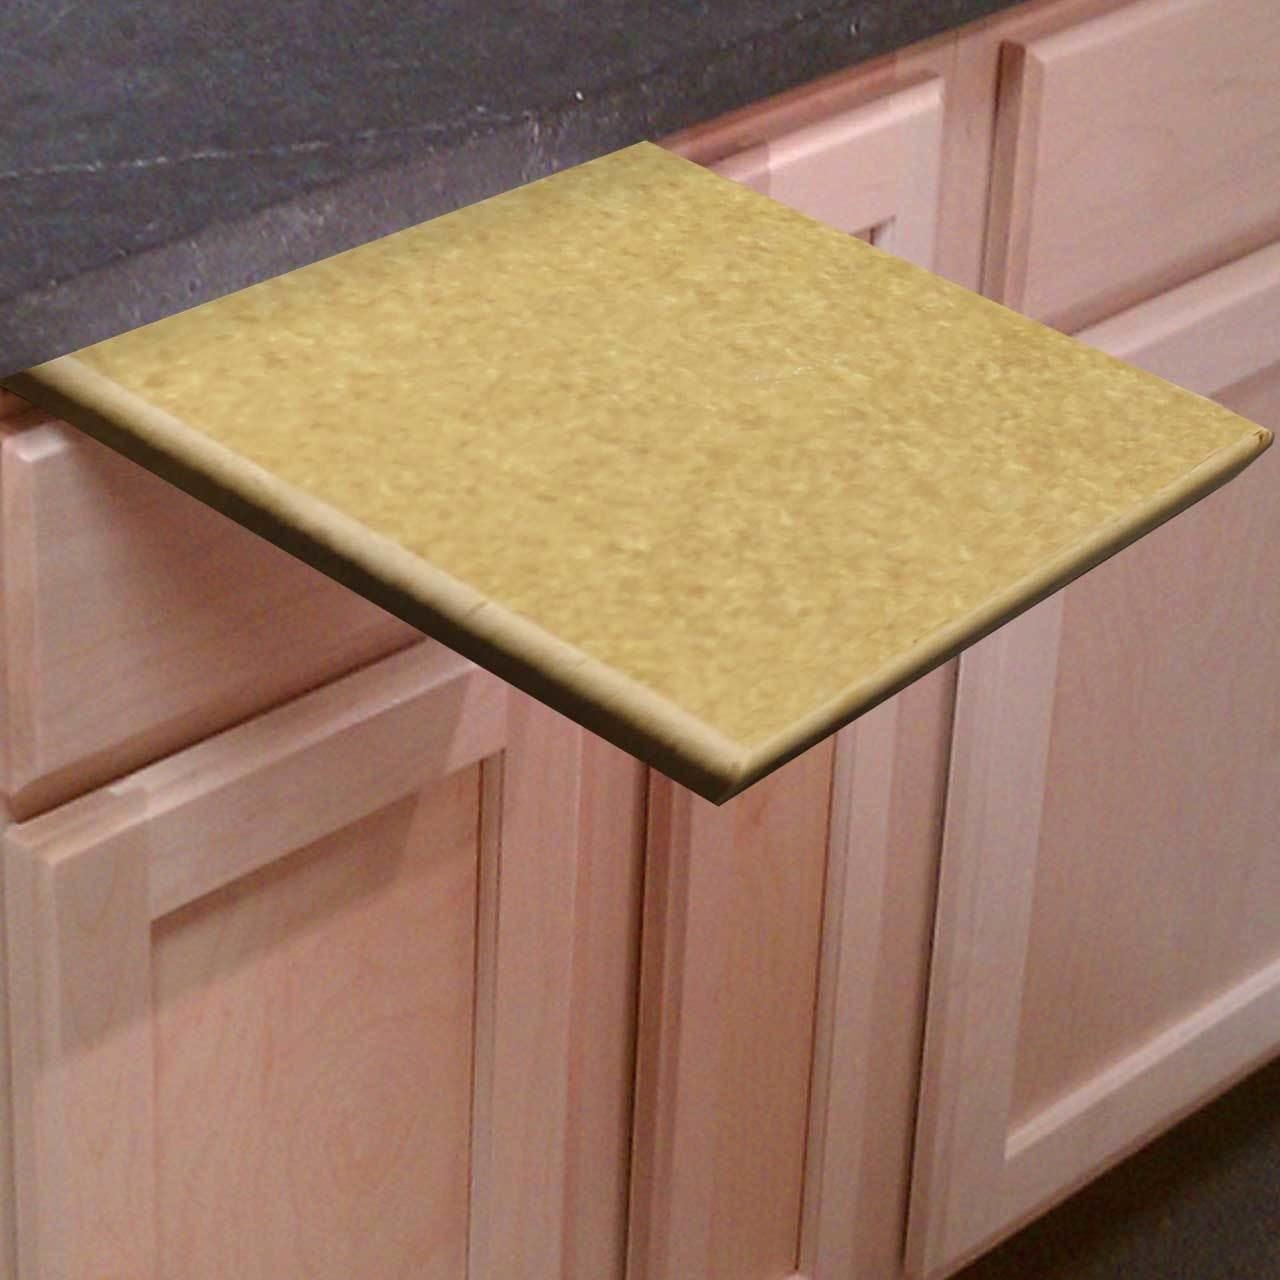 Pull Out Richlite Cutting Board Inch Thick